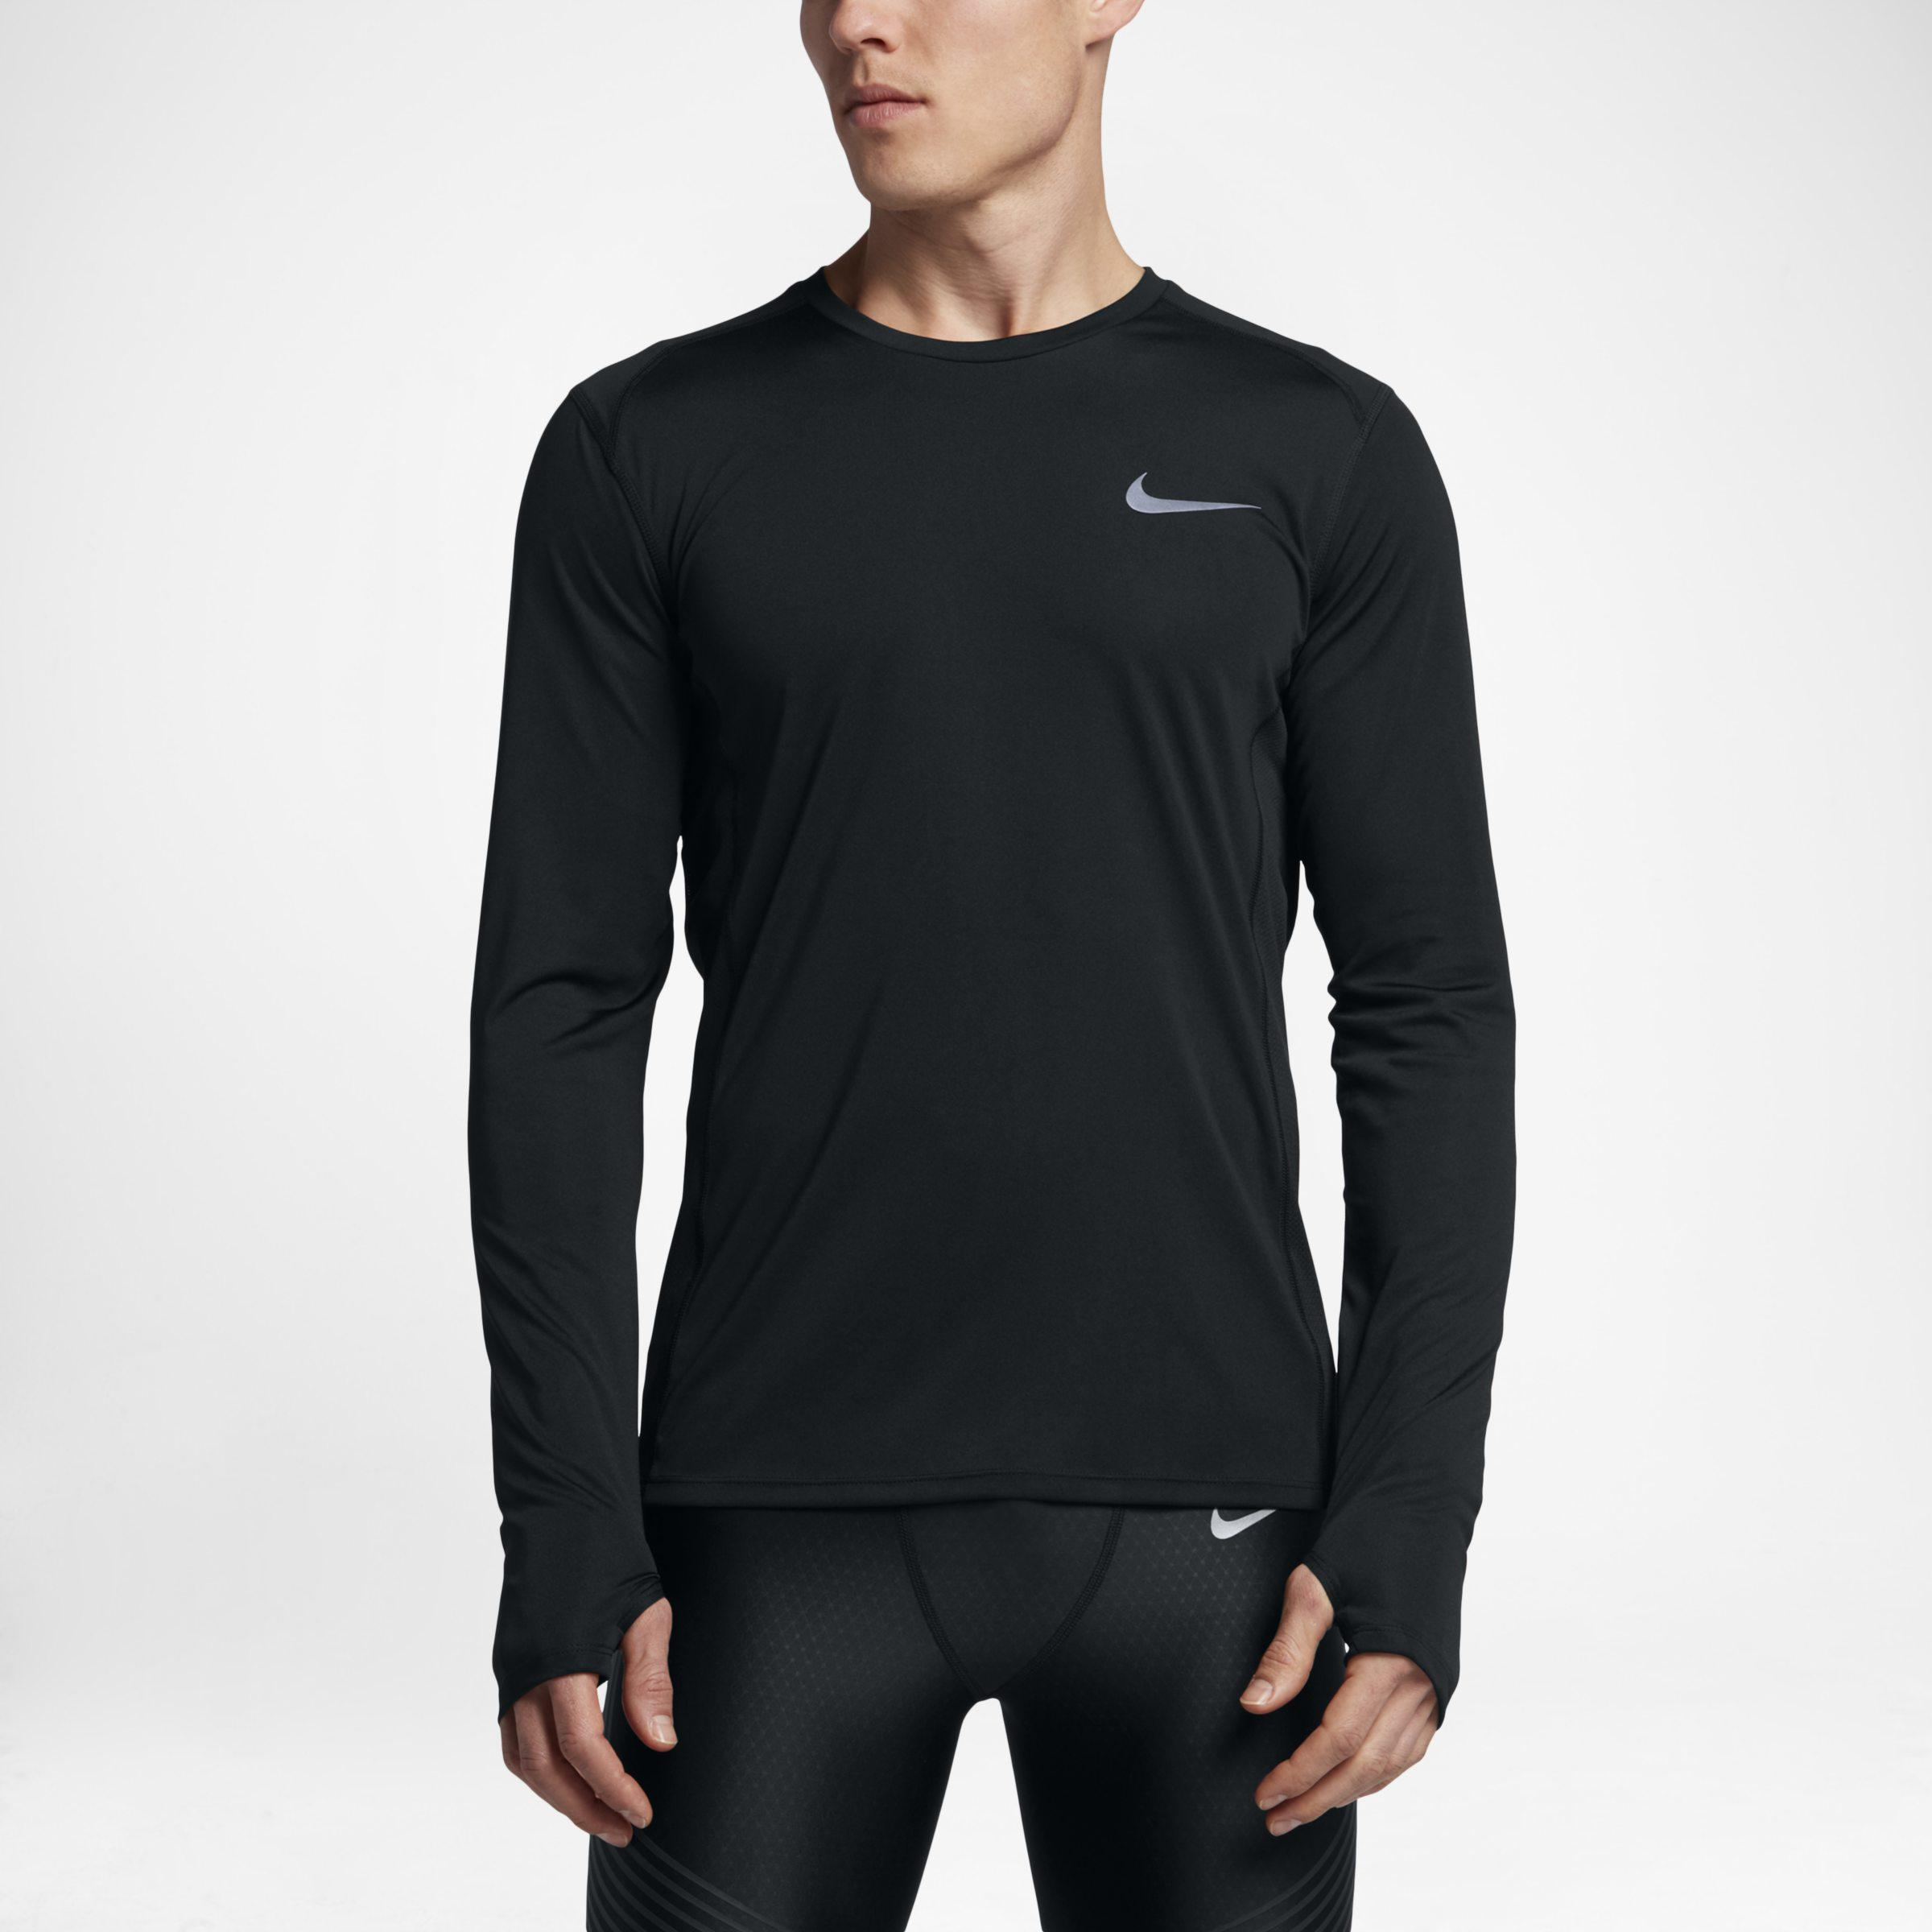 318888c32c Nike Miler Long-sleeve Running Top in Black for Men - Lyst